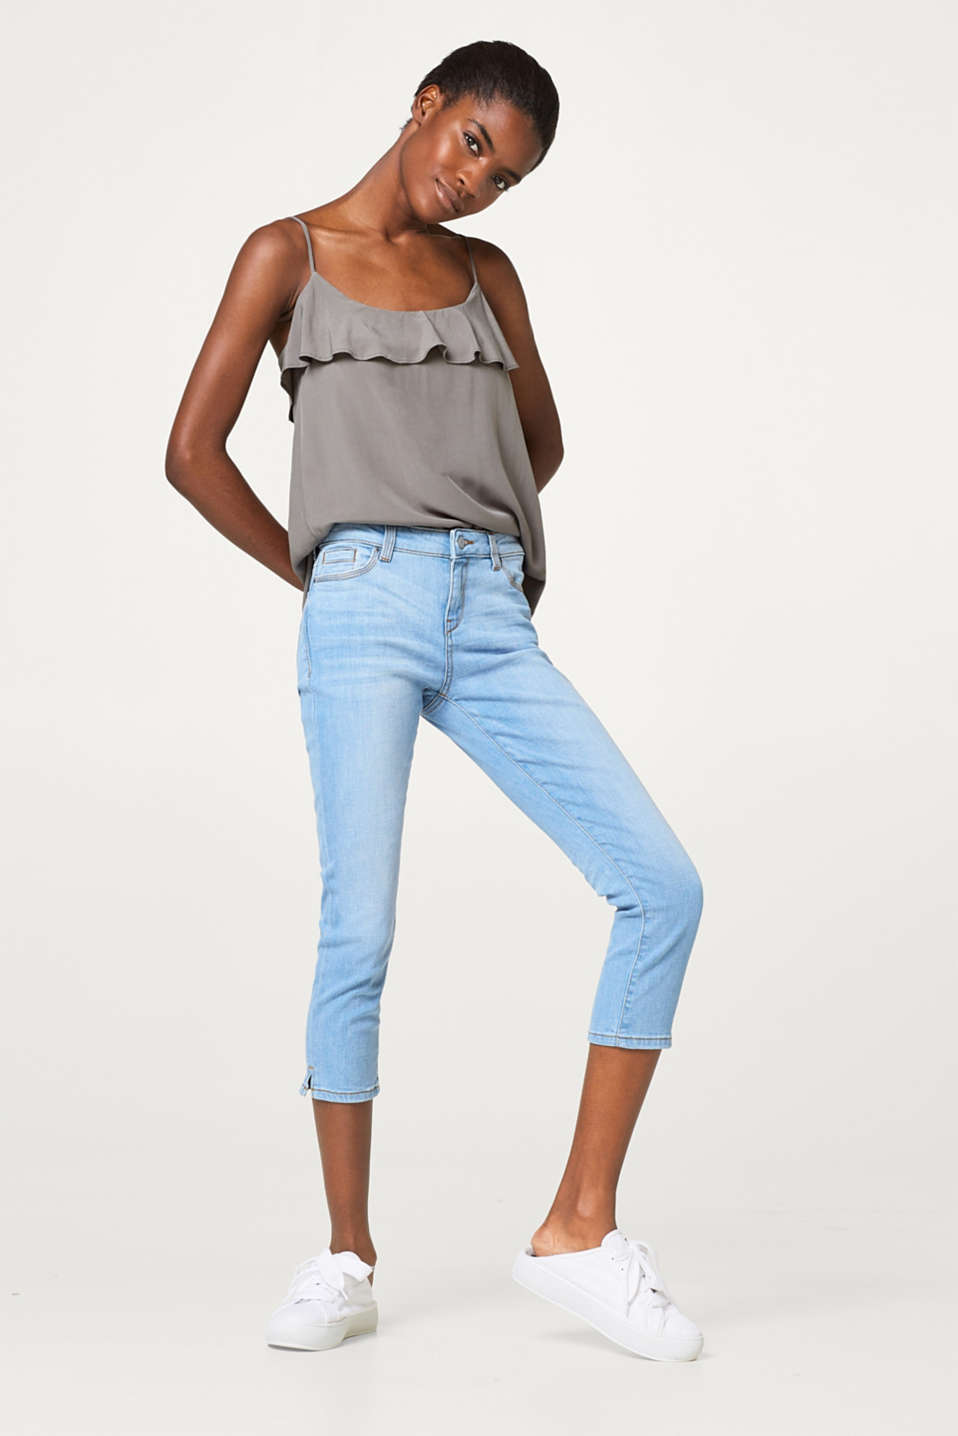 Light stretchy capri length jeans